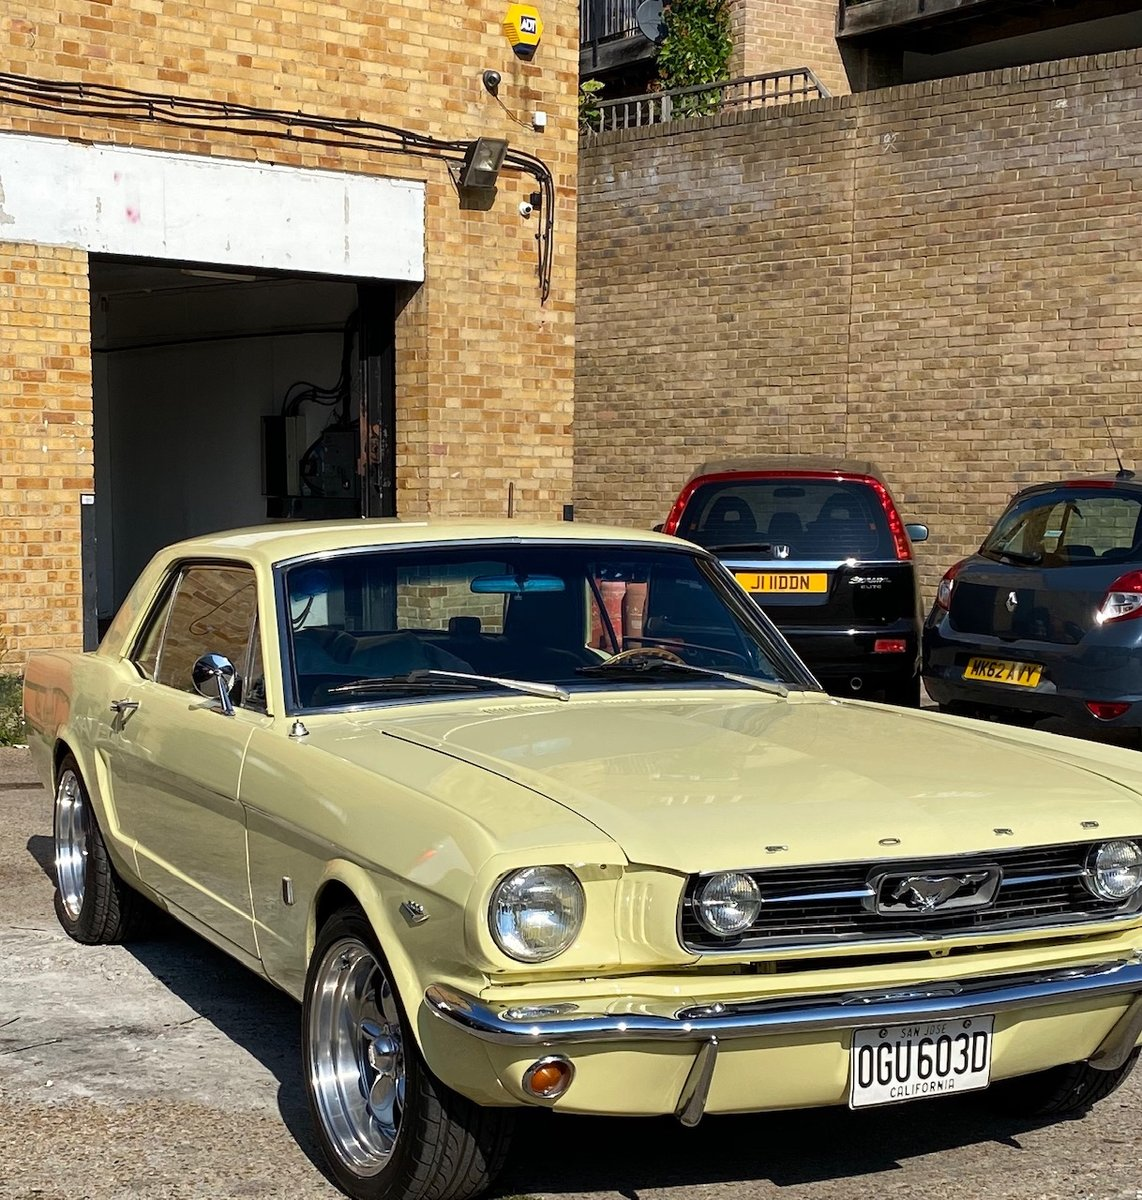 1966 Ford Mustang 302 GT Coupe - 300 BHP For Sale (picture 1 of 6)